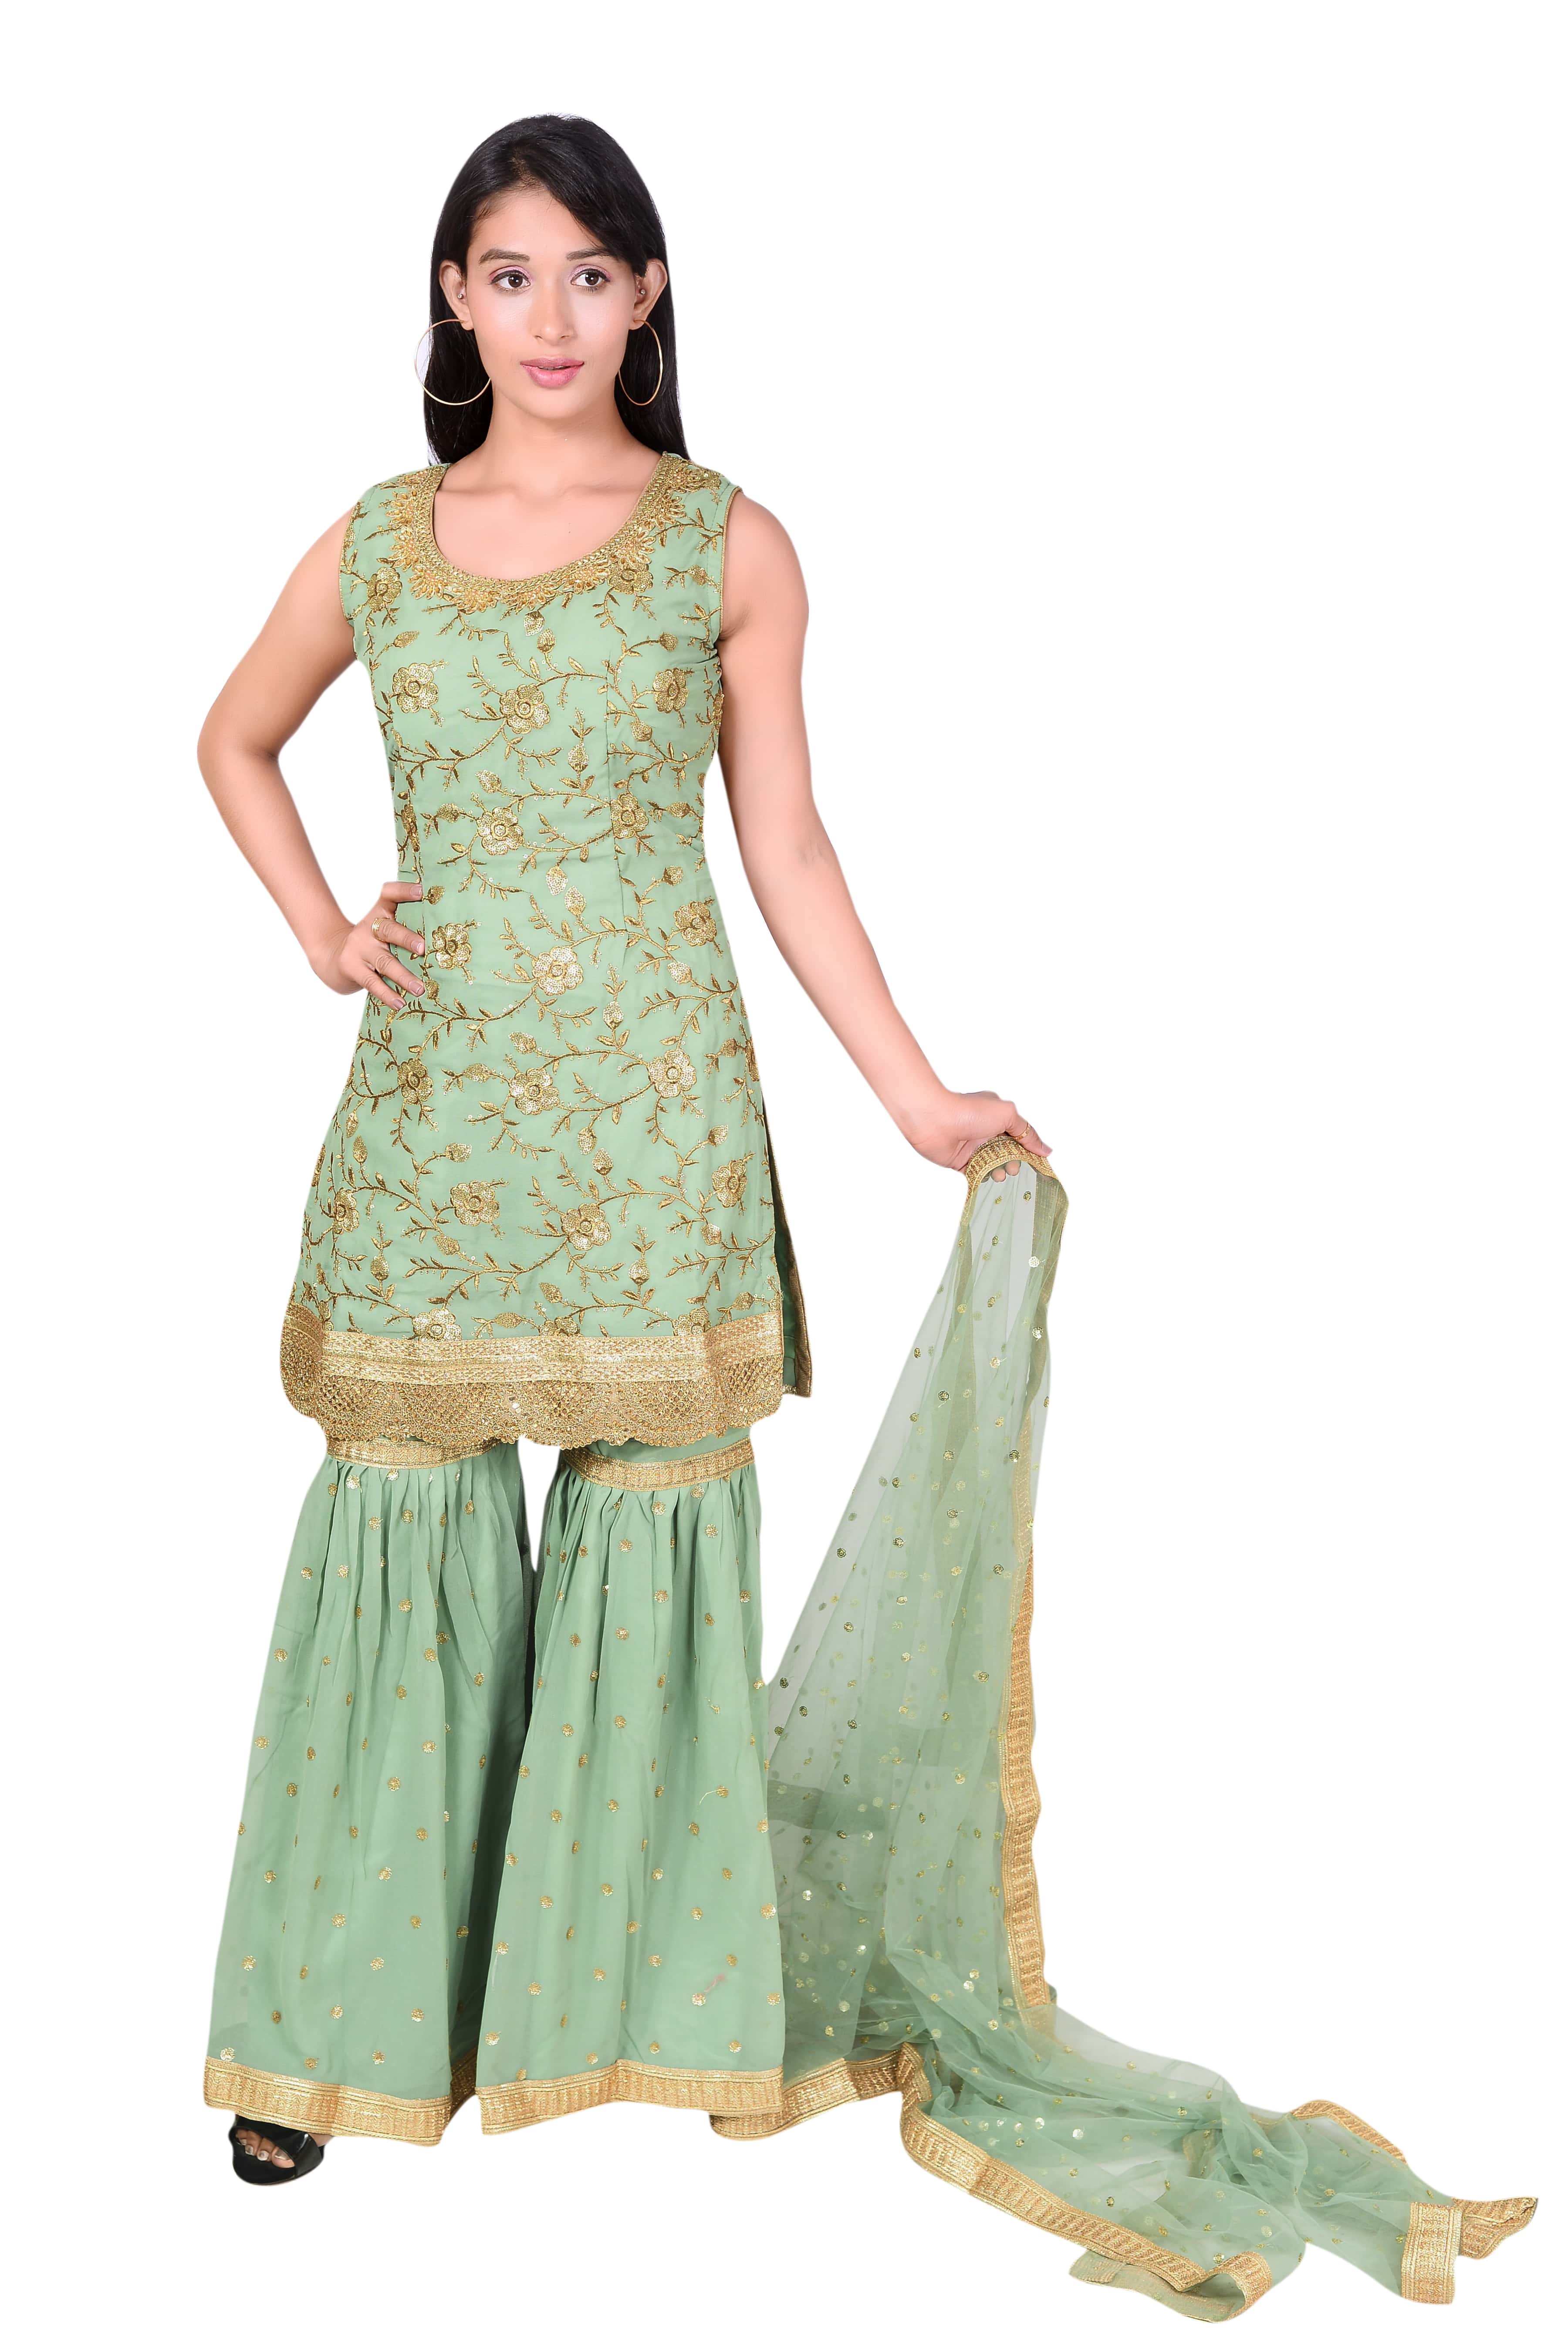 Designer Sharara Suits In Meerut